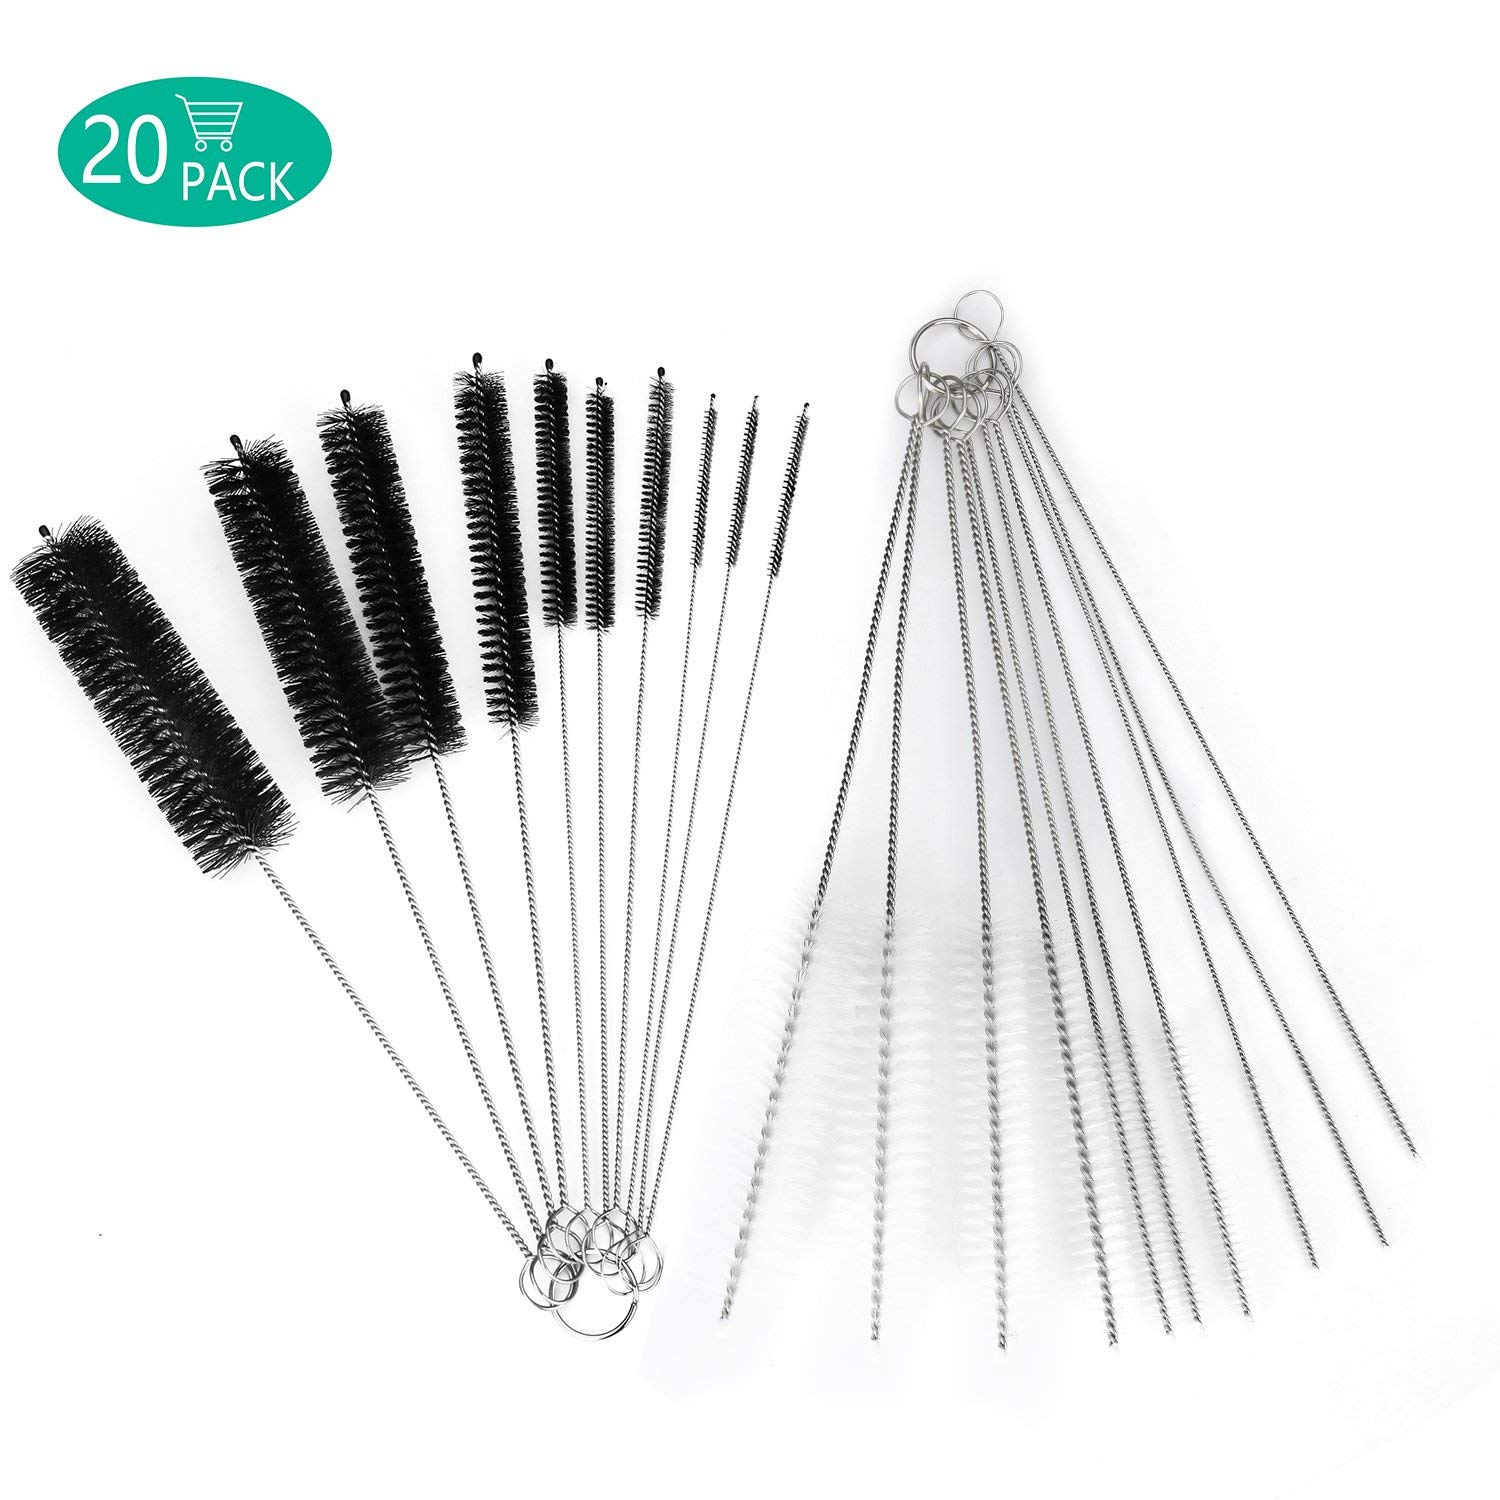 DECORA 10 Pieces Nylon Cleaning Bottle Brush Pipe Cleaning Brushes Tube Brushes Tube Bottle Straw Washing Cleaner Bristle Kit Tool Black